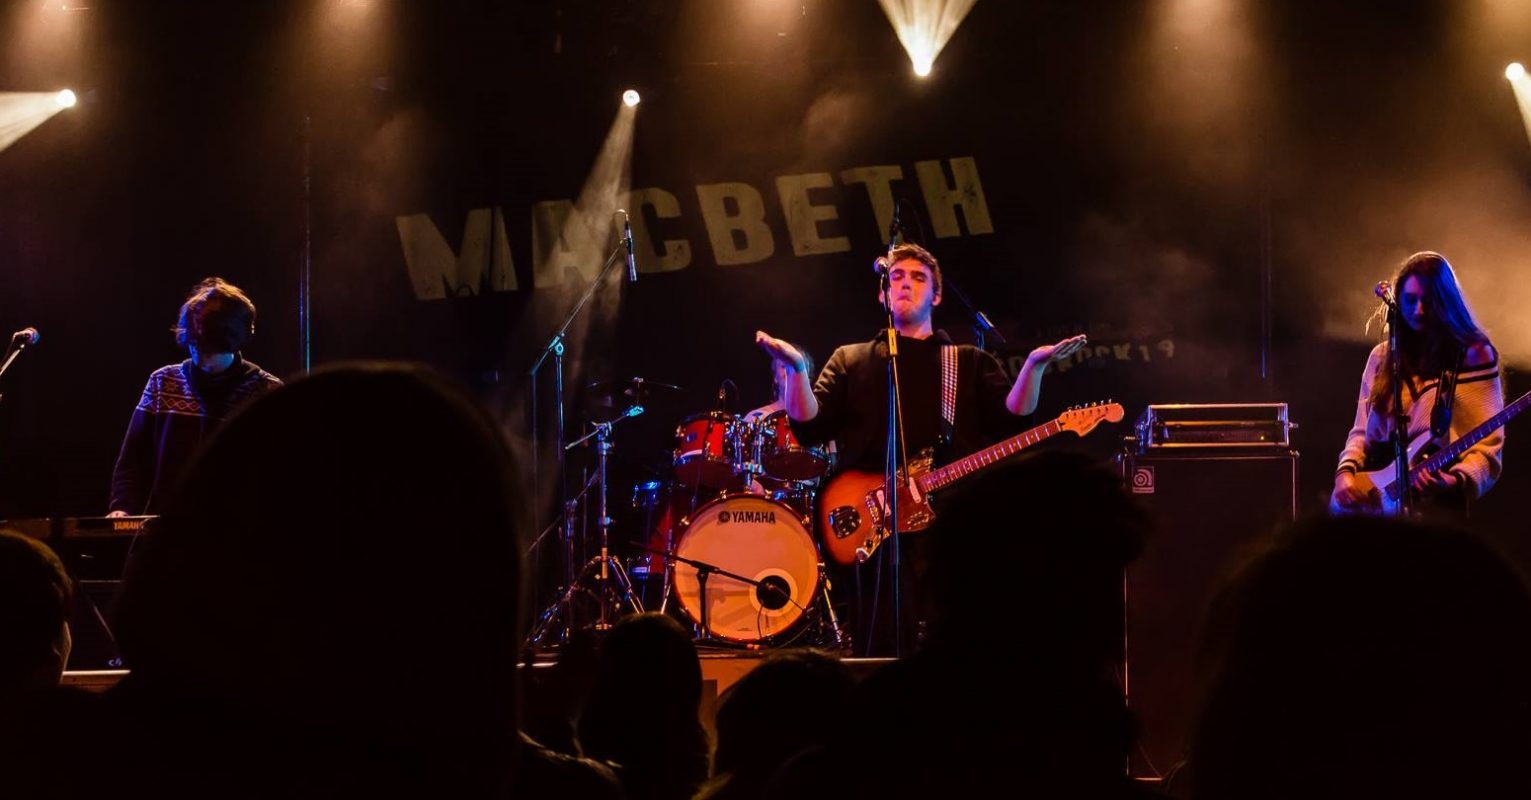 Šourock 2019, Macbeth